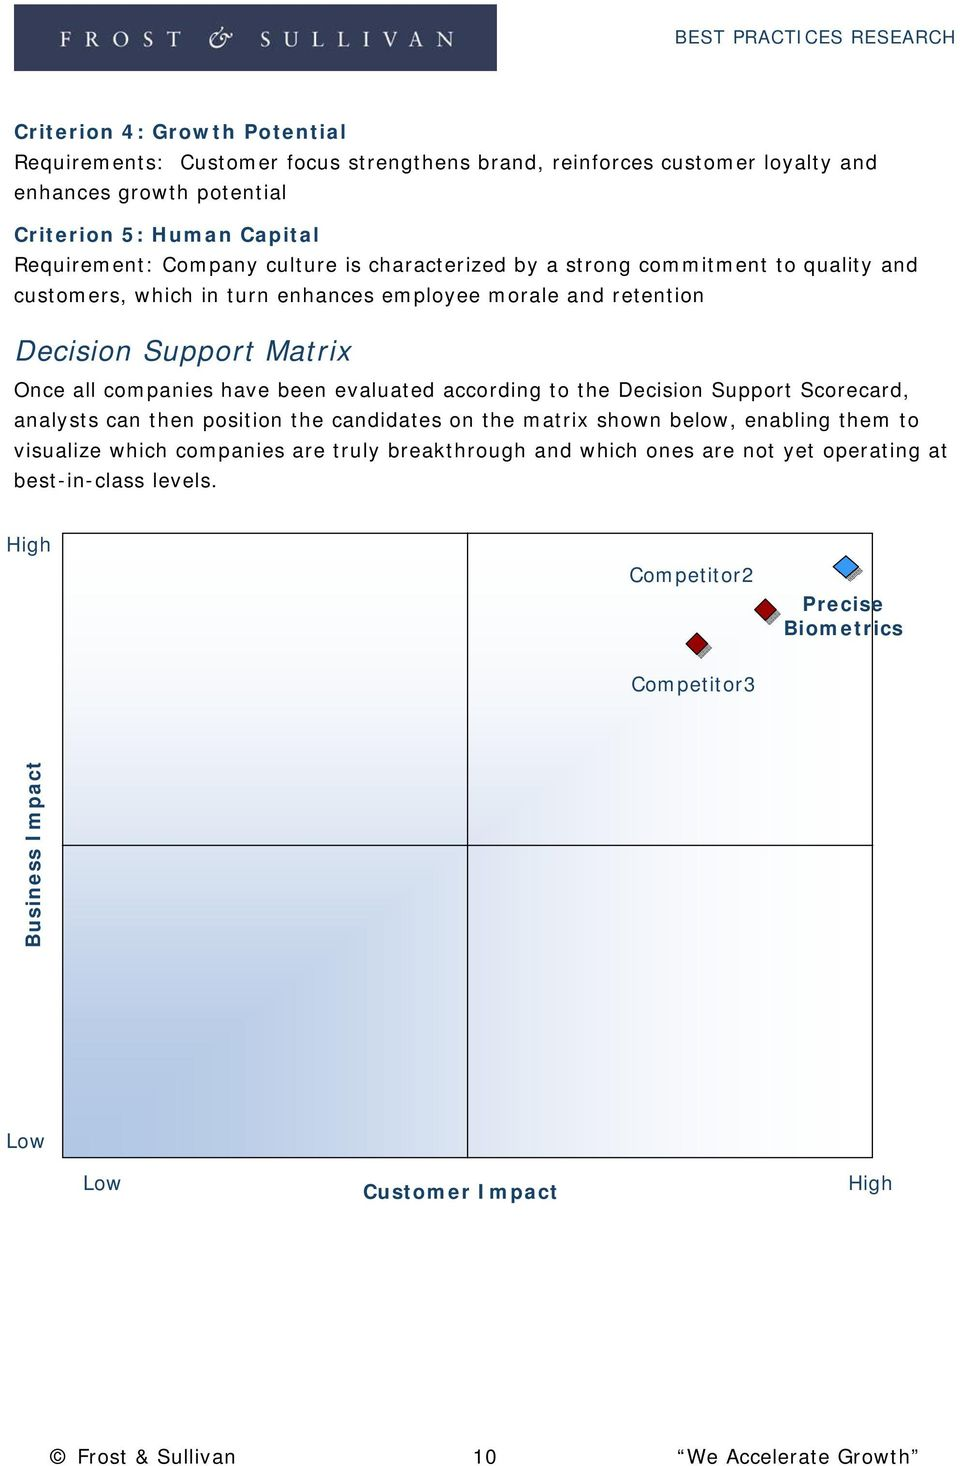 evaluated according to the Decision Support Scorecard, analysts can then position the candidates on the matrix shown below, enabling them to visualize which companies are truly